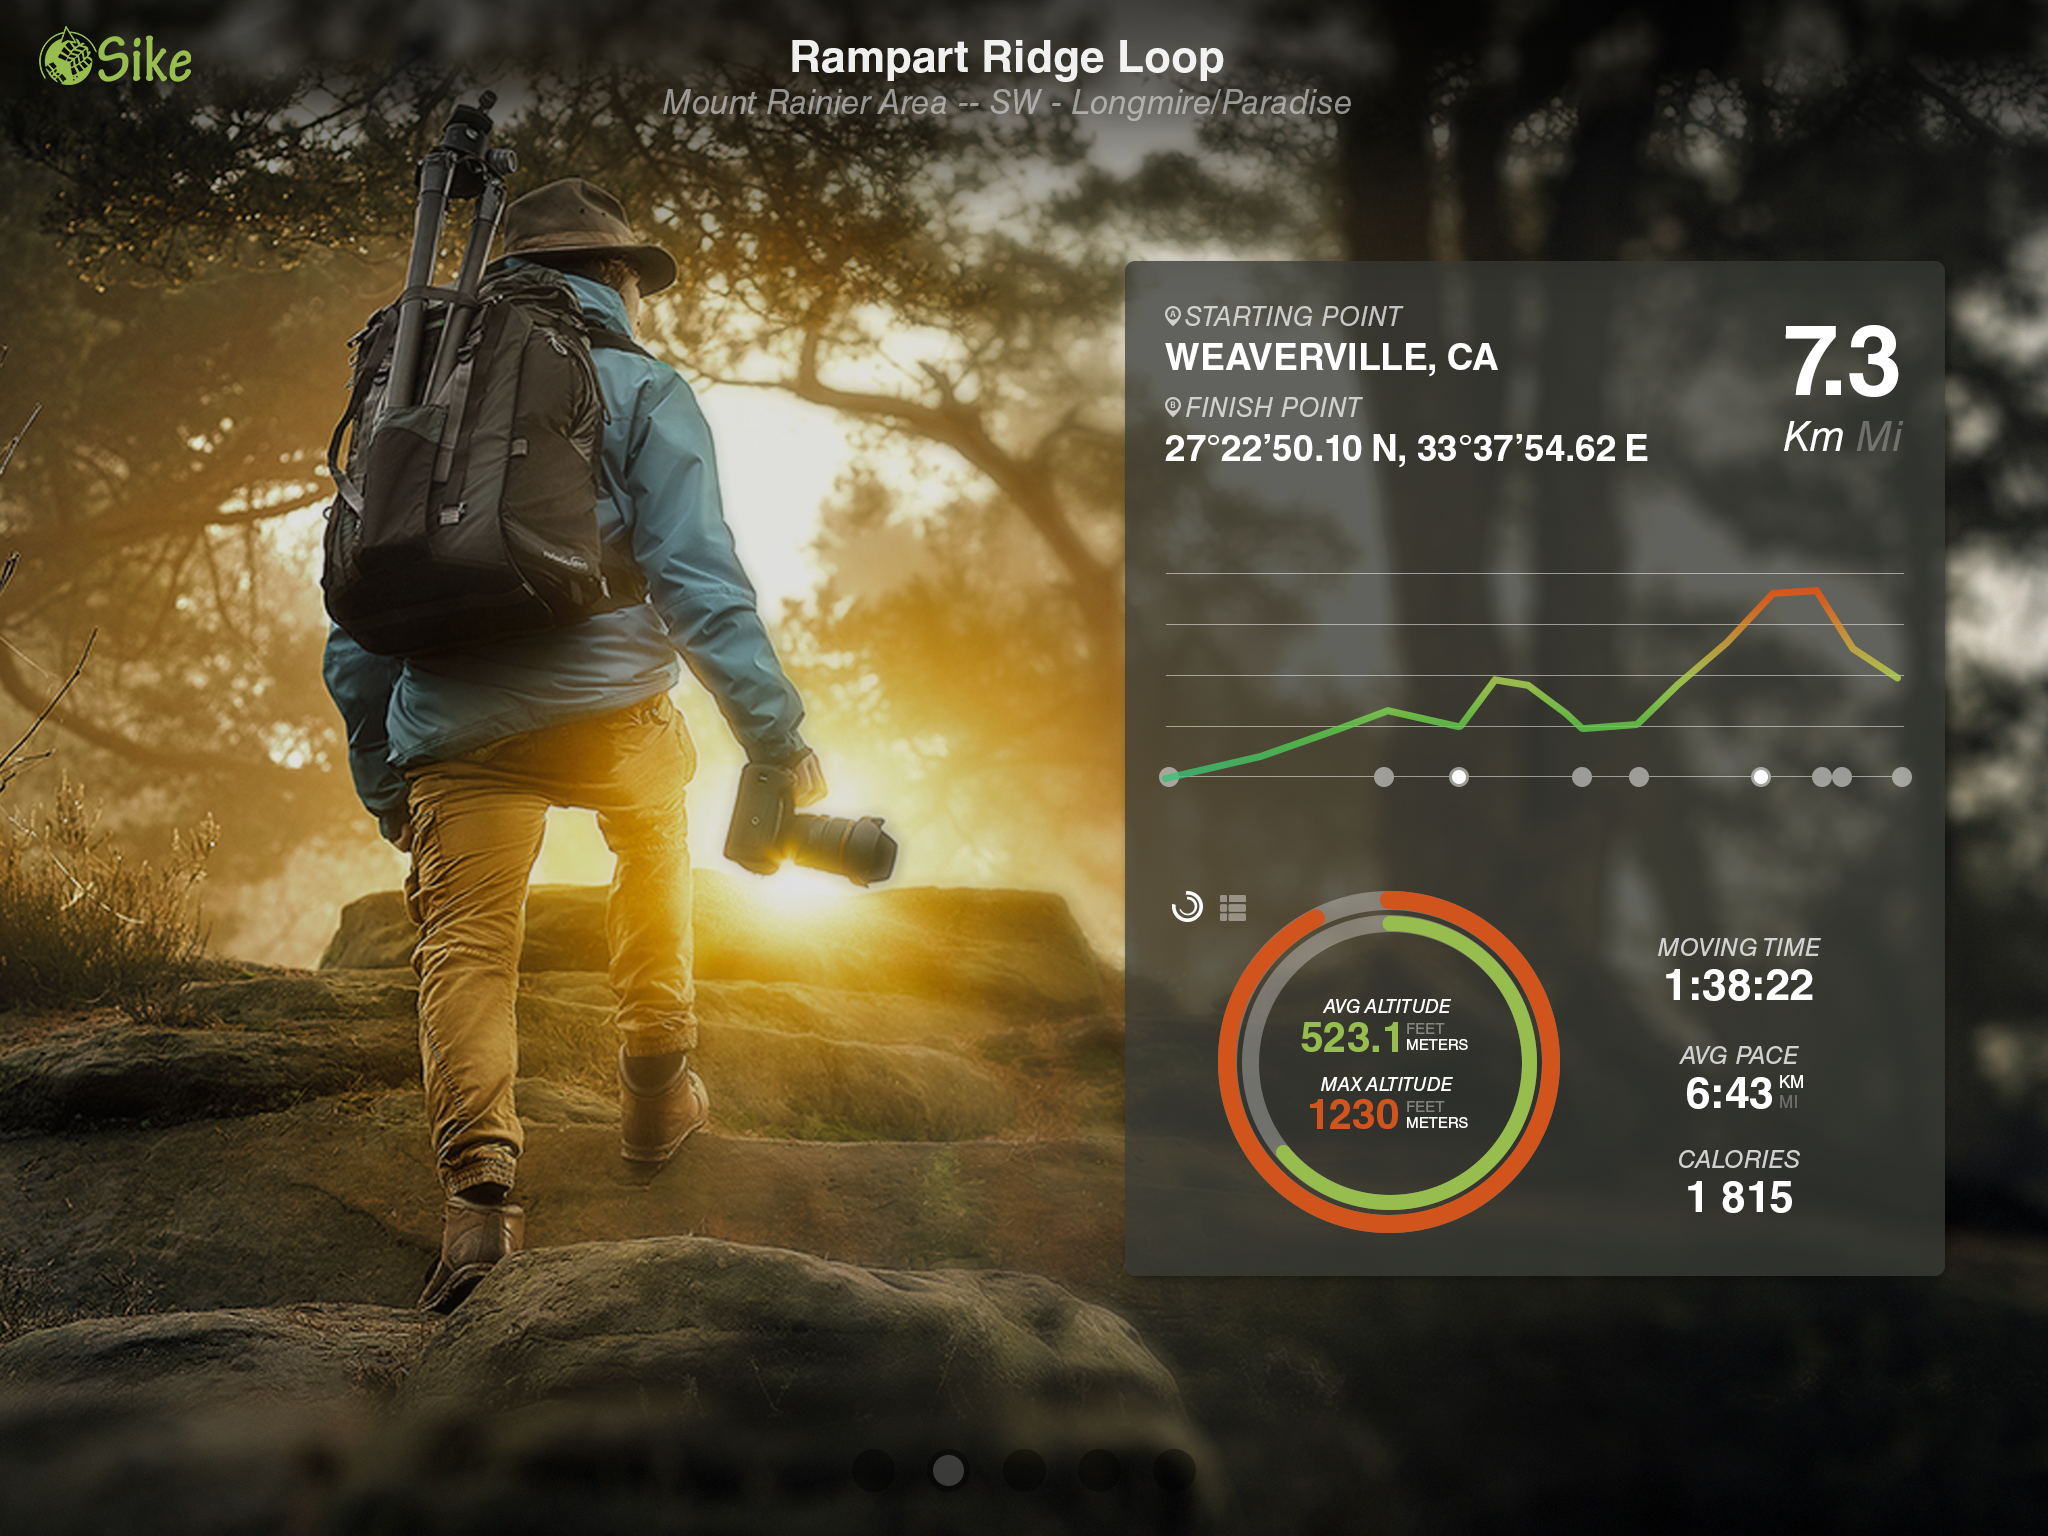 Hiking Appp UI Mock Screen. This was done as a poroof of concept, by combining Photo ALbums/sharing with Strava like statistics. concept/Desgin done by me. Share, Comment, spread the love! :)